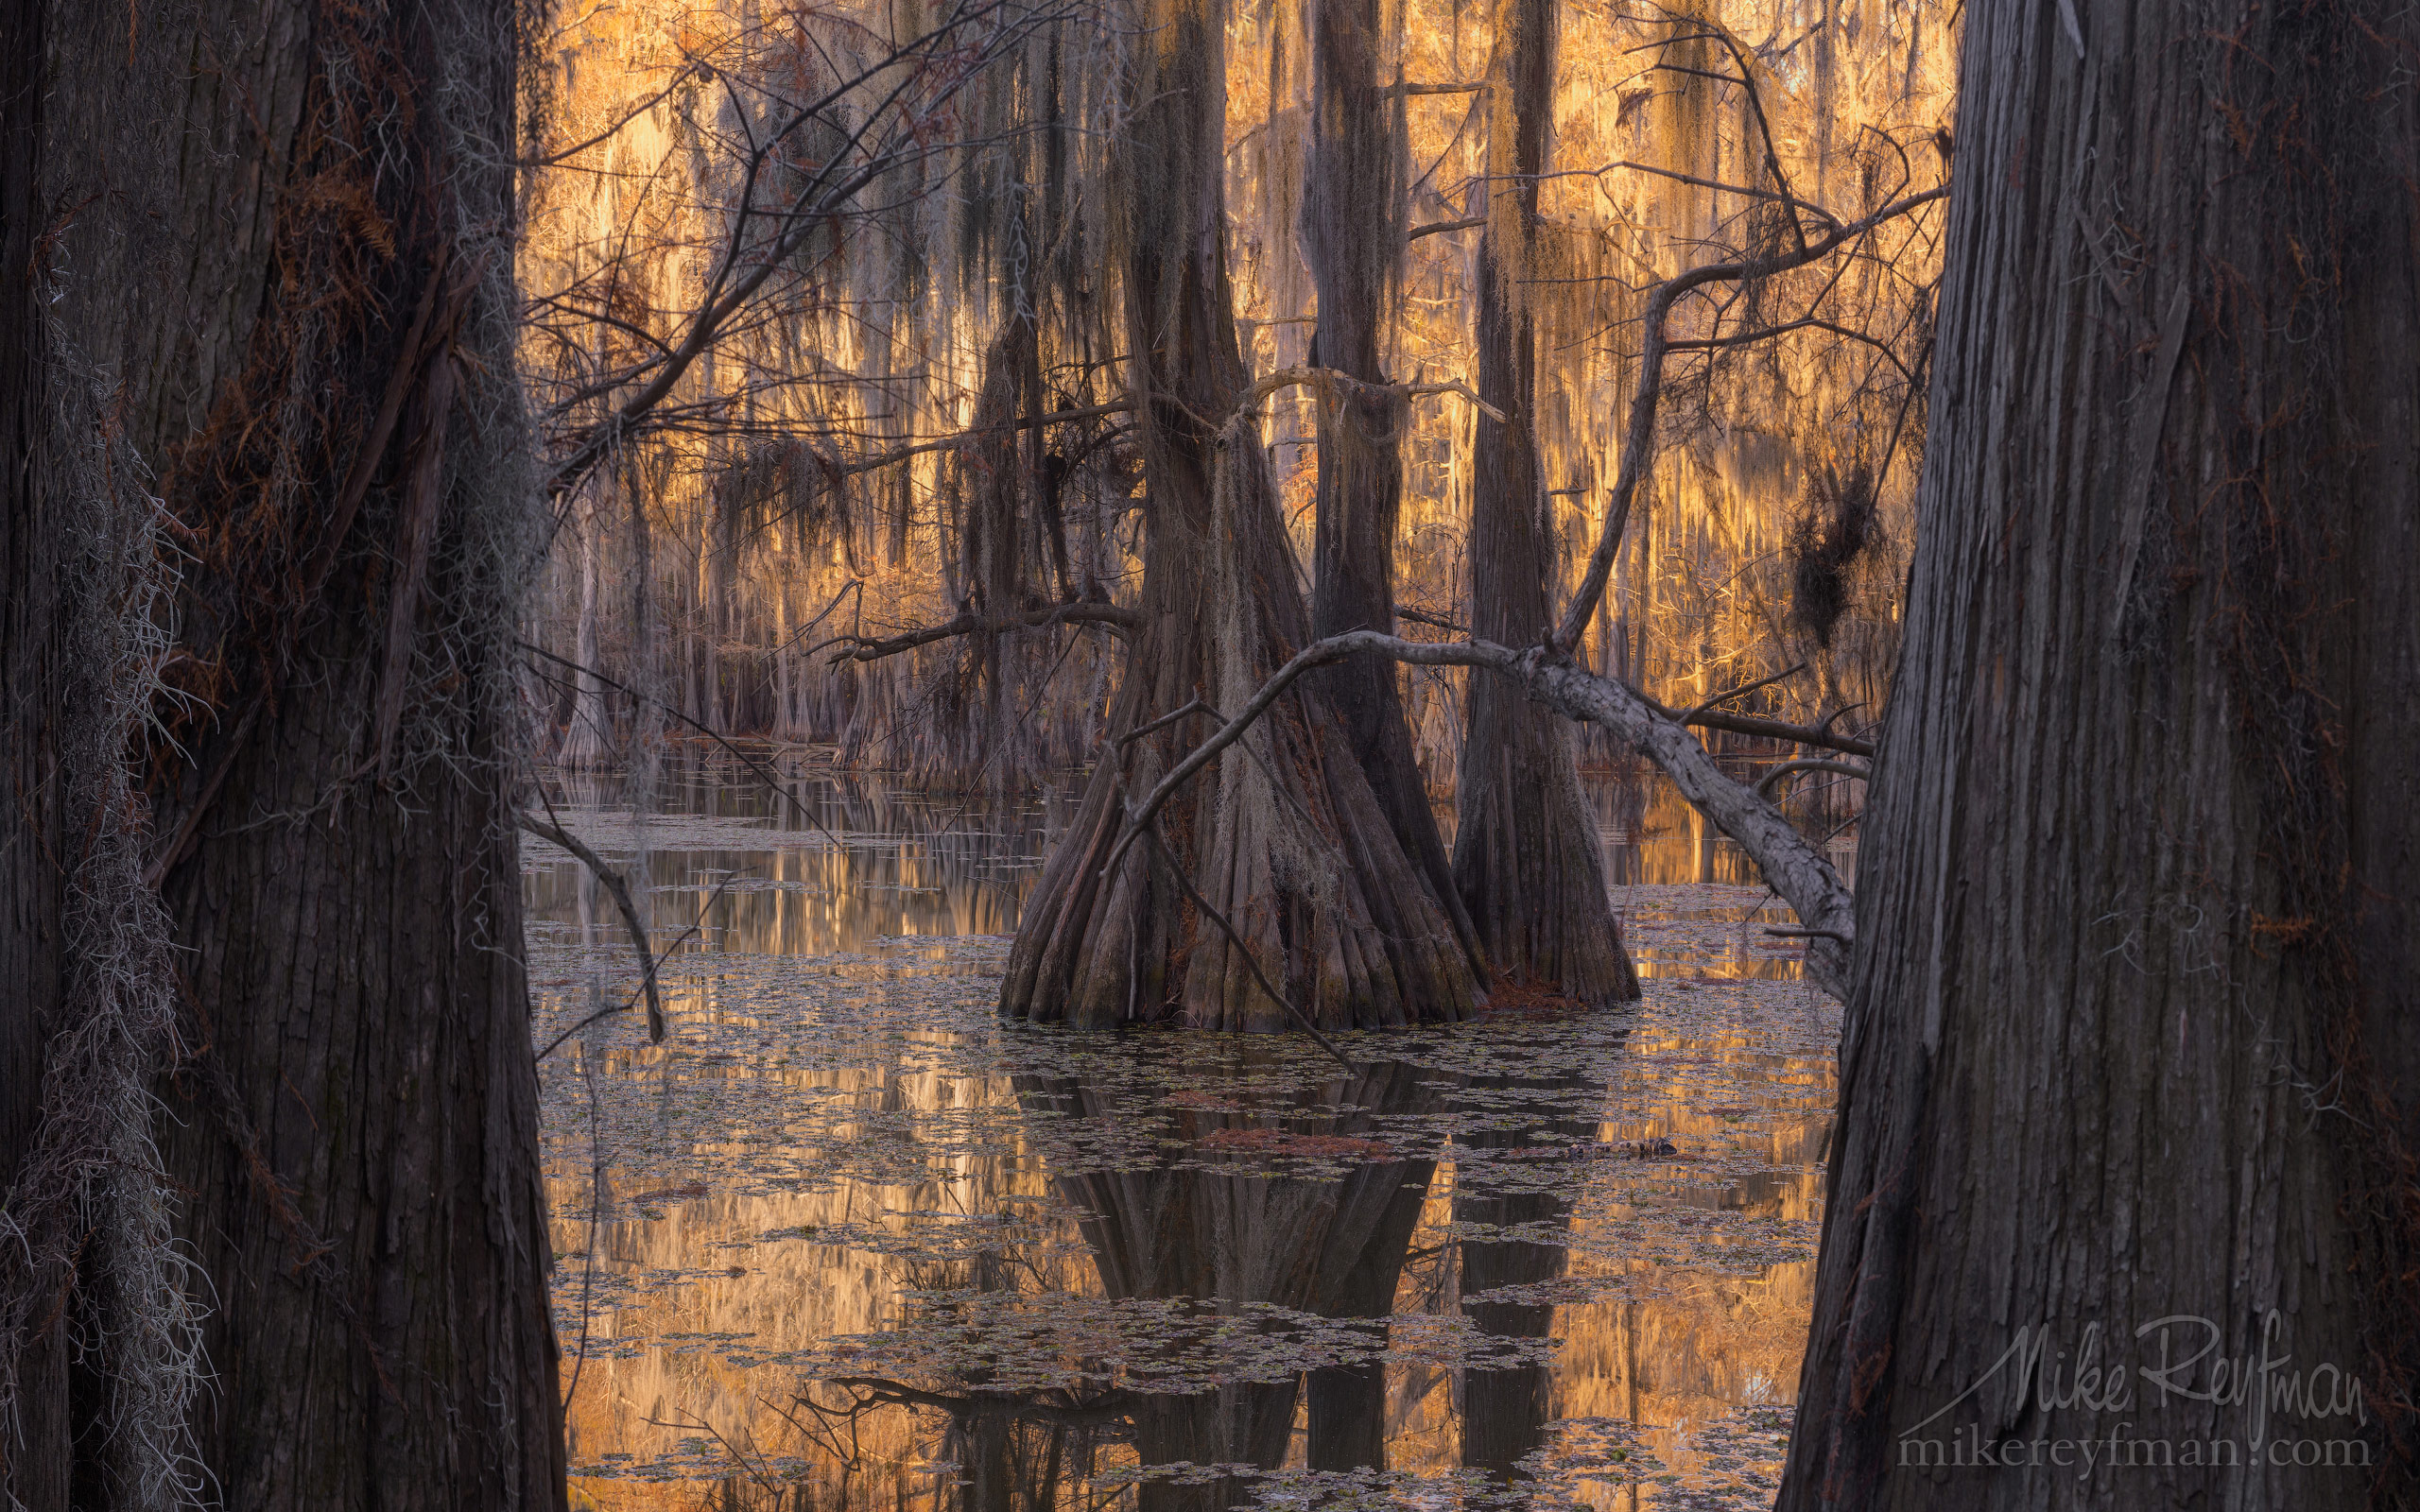 Bald Cypress trees in the swamp. Caddo Lake, Texas, US 007_LT1_50A2777.jpg - Bold Cypress and Tupelo Trees in the swamps of Atchafalaya River Basin. Caddo, Martin and Fousse Lakes. Texas/Louisiana, USA. - Mike Reyfman Photography